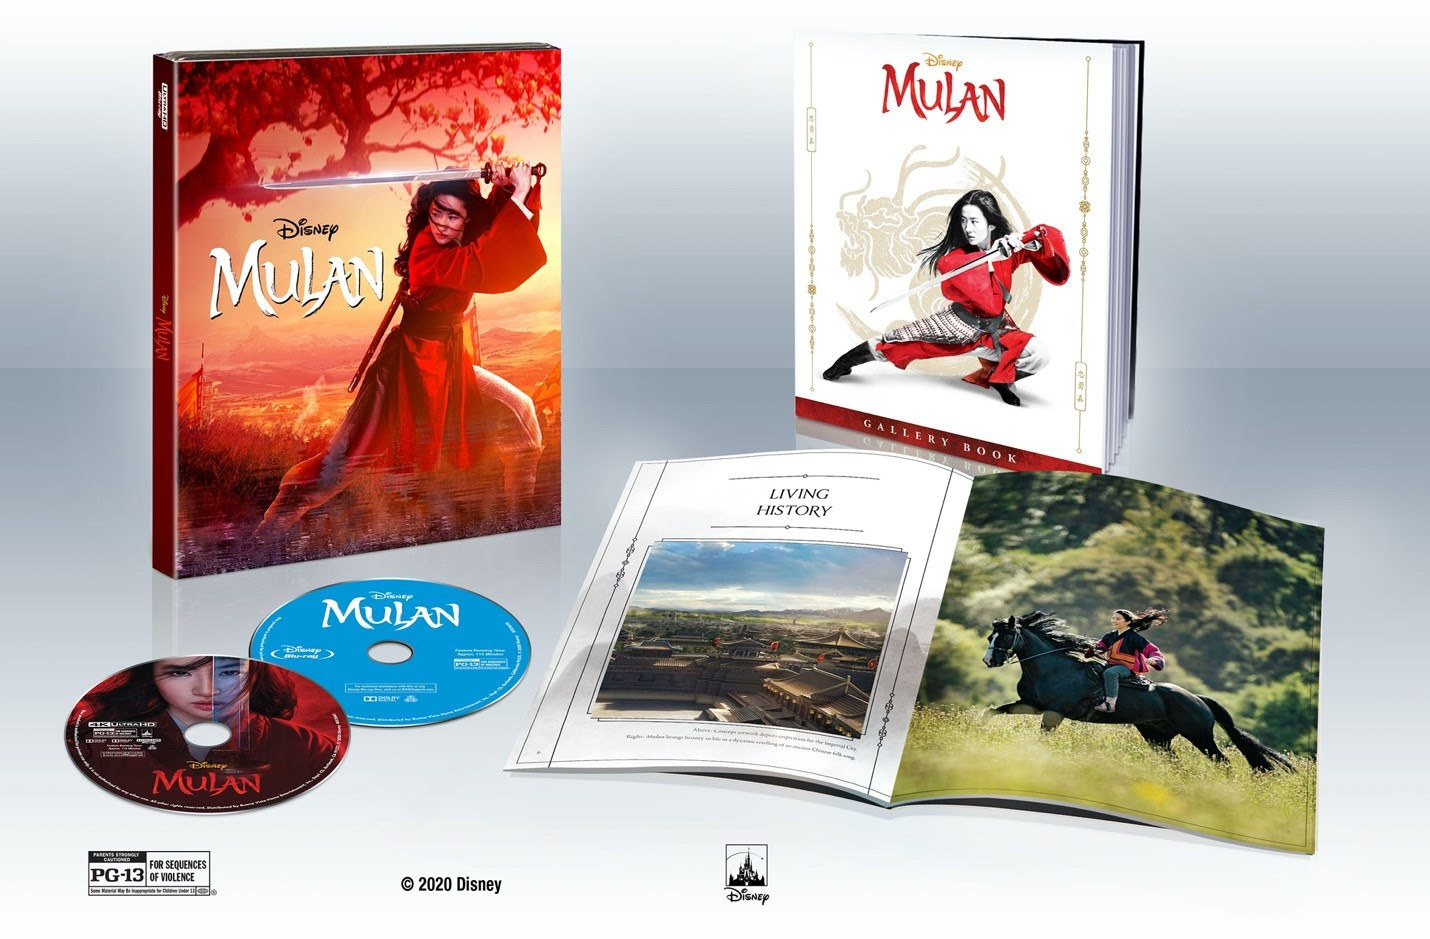 A package set of Mulan 4K discs and a Mulan gallery book